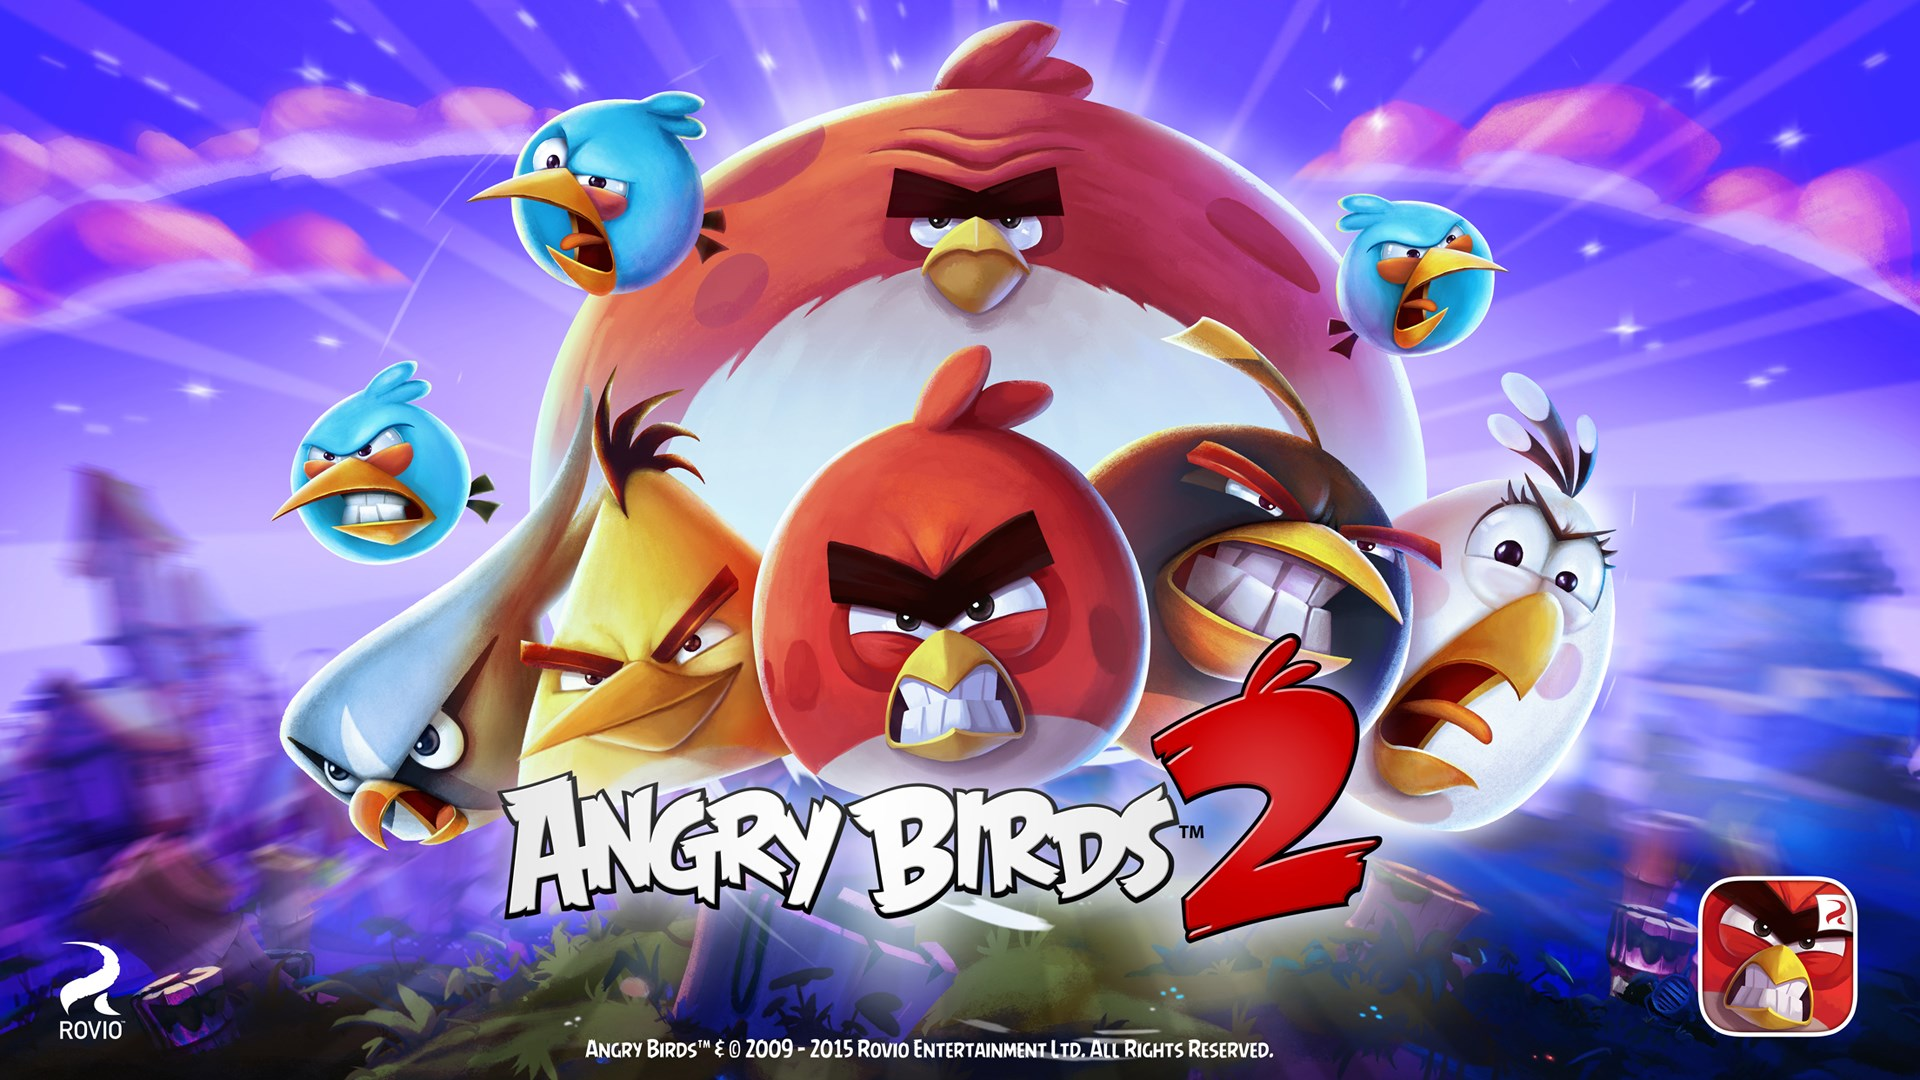 Free-computer-Angry-Birds-Addison-Birds-1920x1080-wallpaper-wp3605800